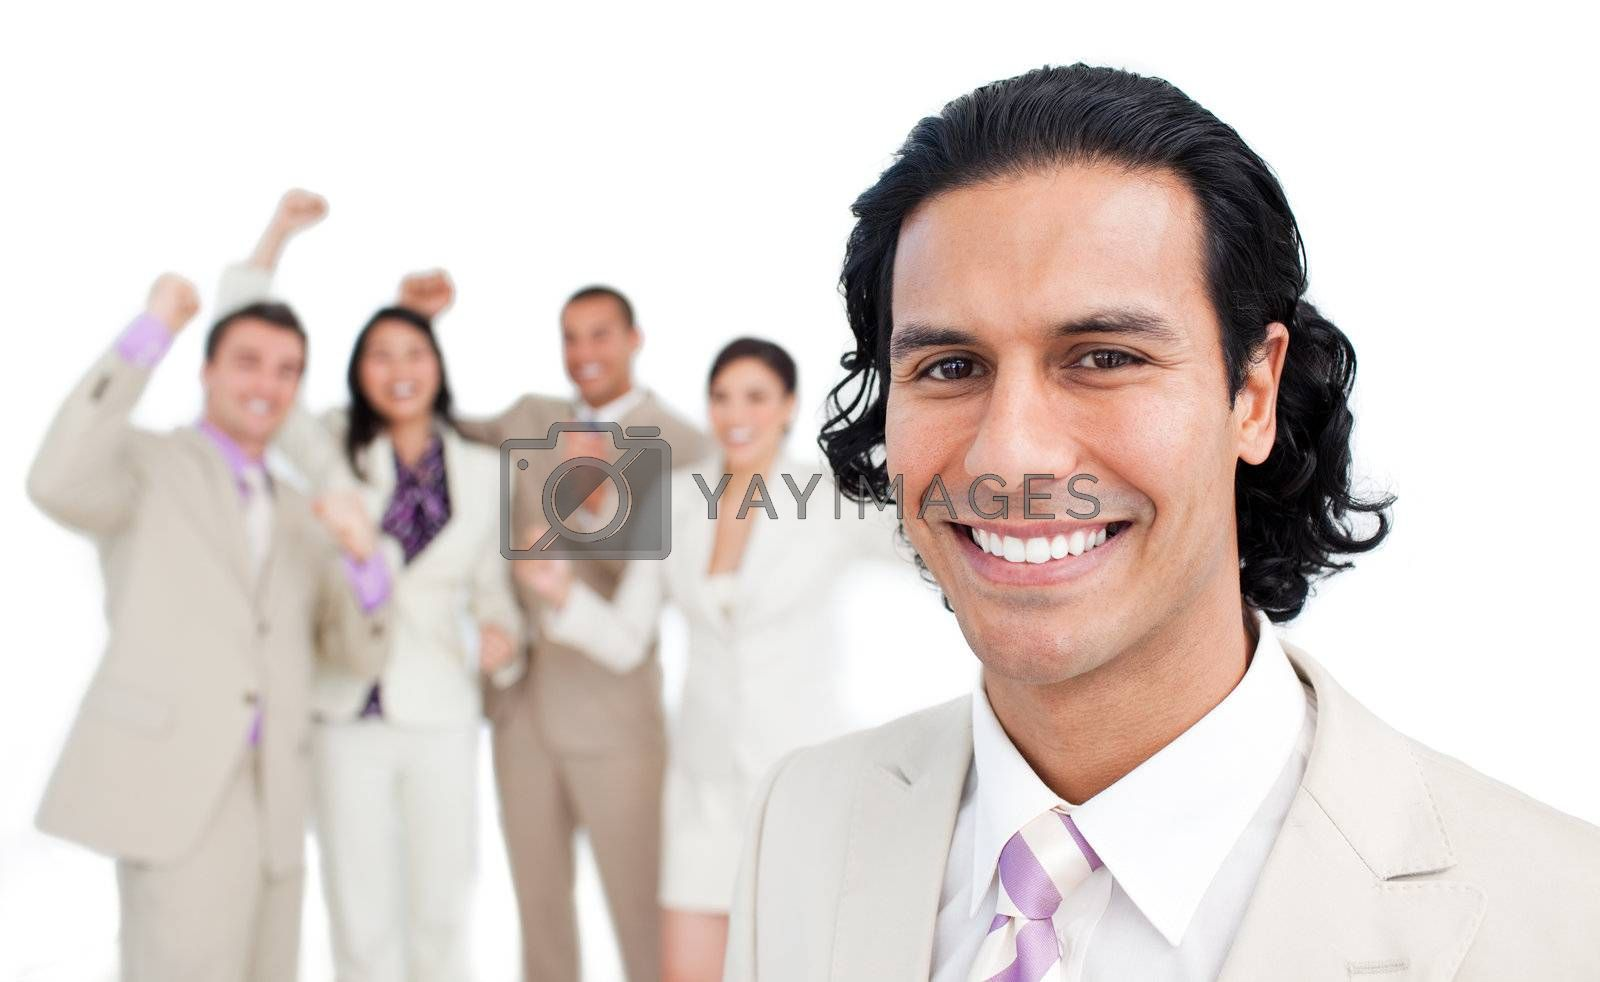 Successful business team punching the air in celebration against a white background